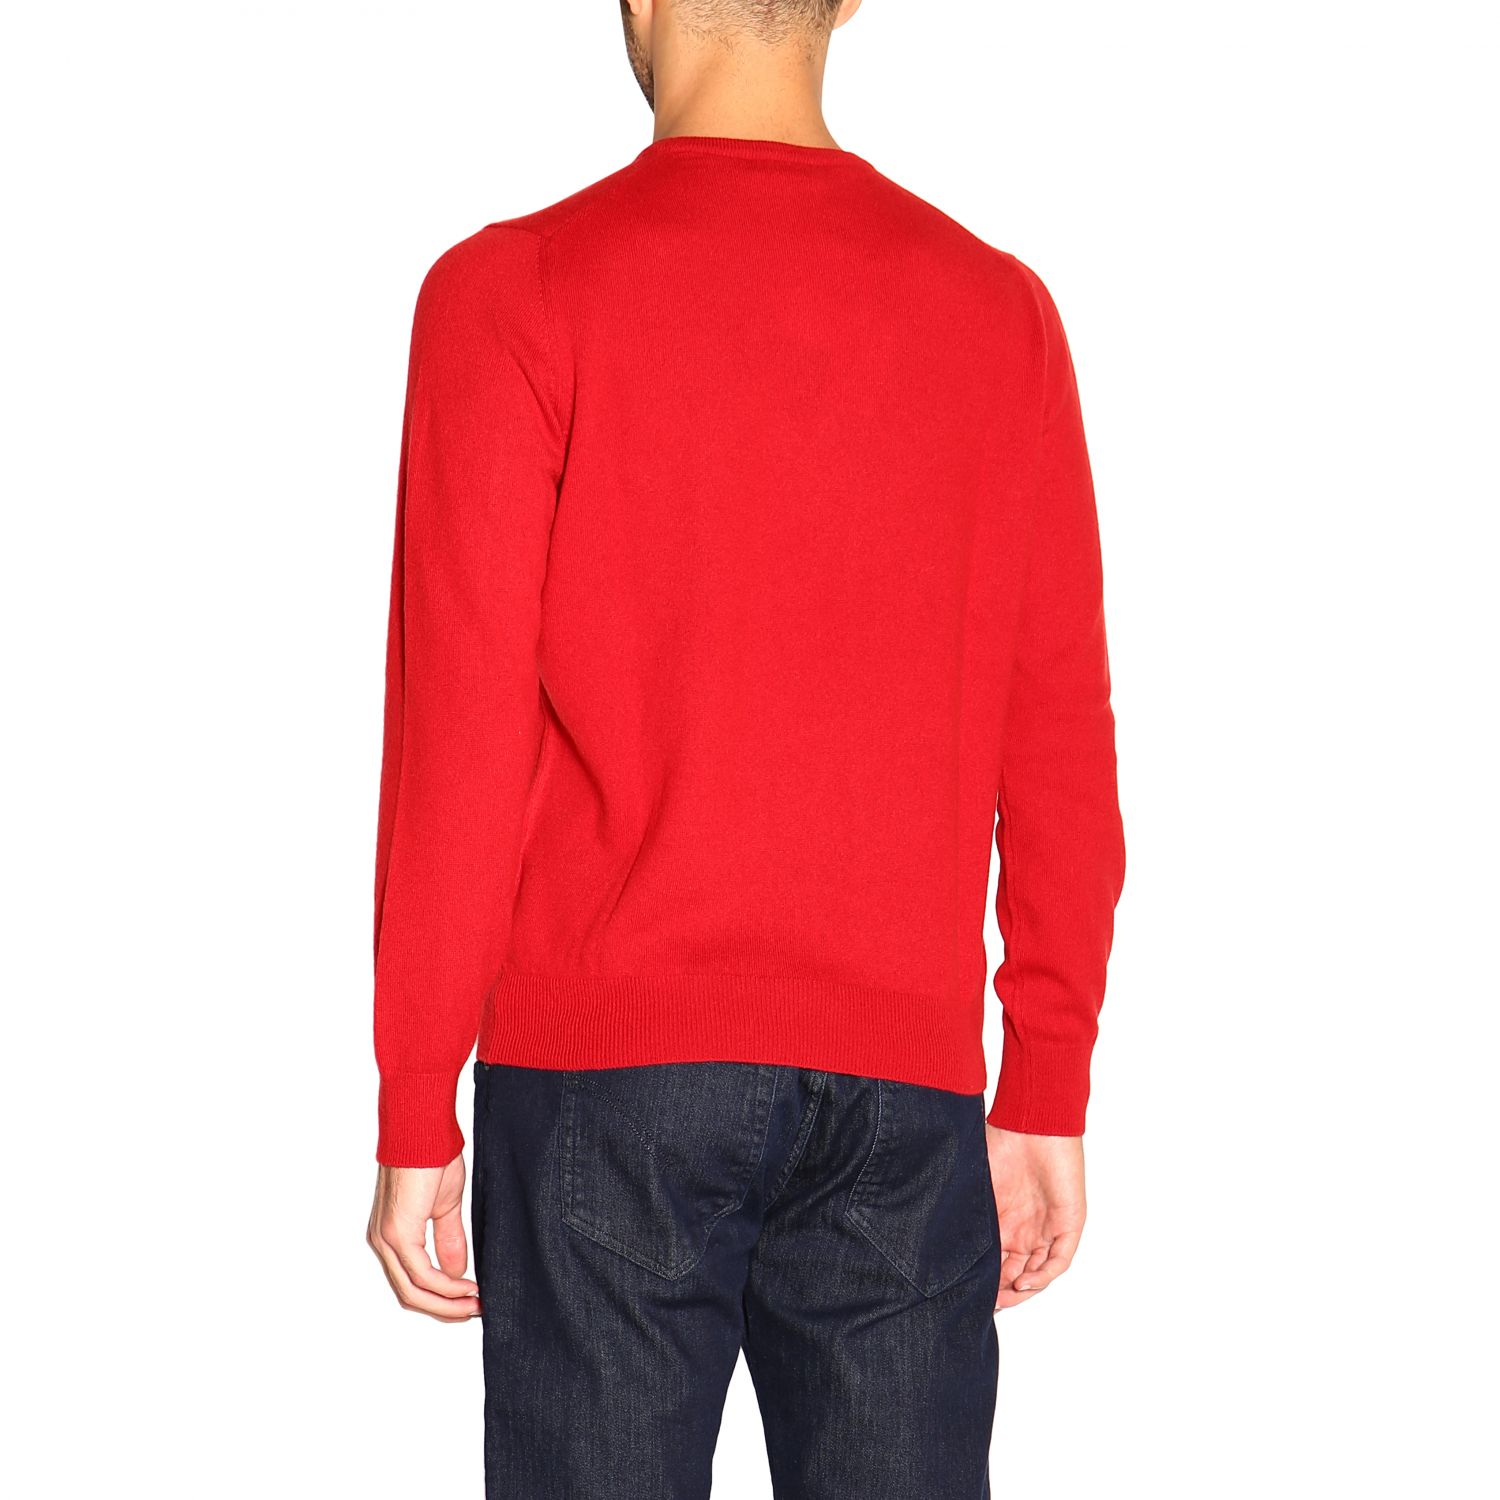 Sweater Barba Napoli: Sweater men Barba Napoli red 3